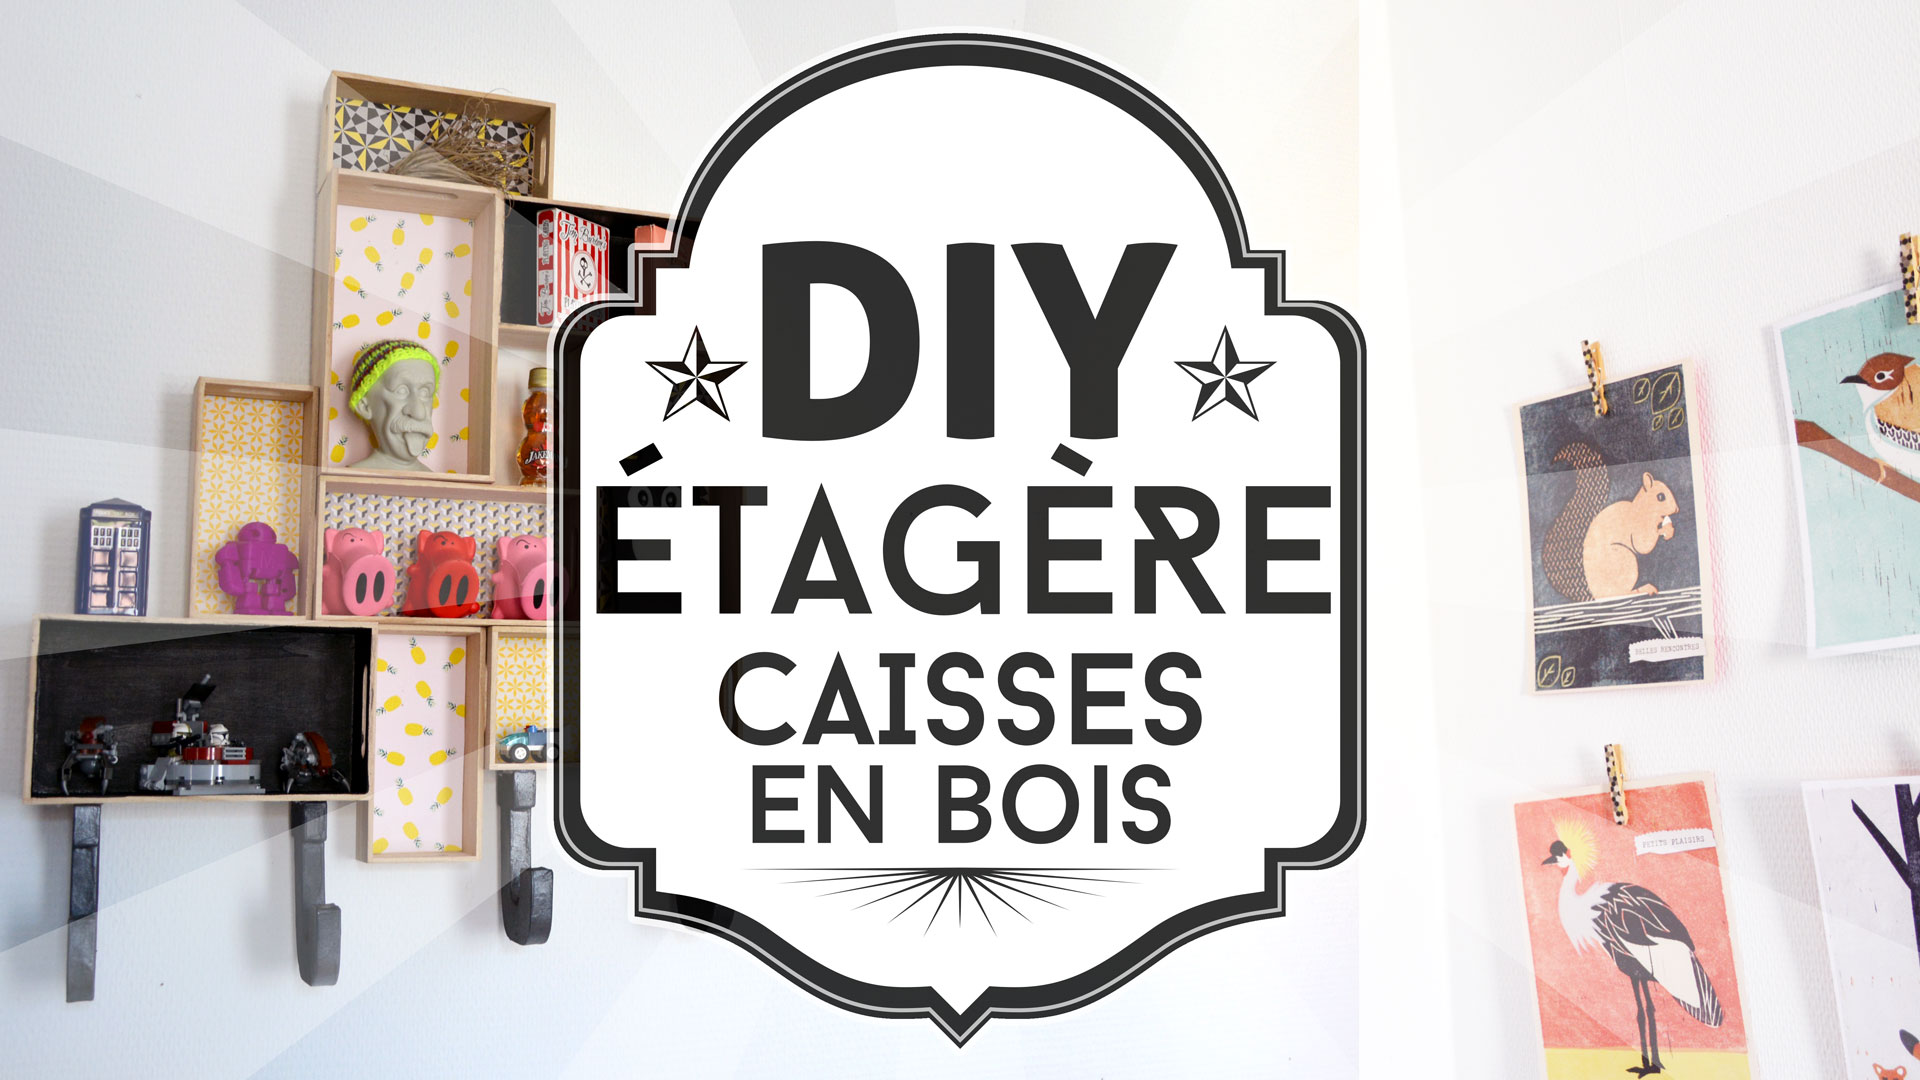 diy etag re en caisses en bois cyanotype le blog. Black Bedroom Furniture Sets. Home Design Ideas